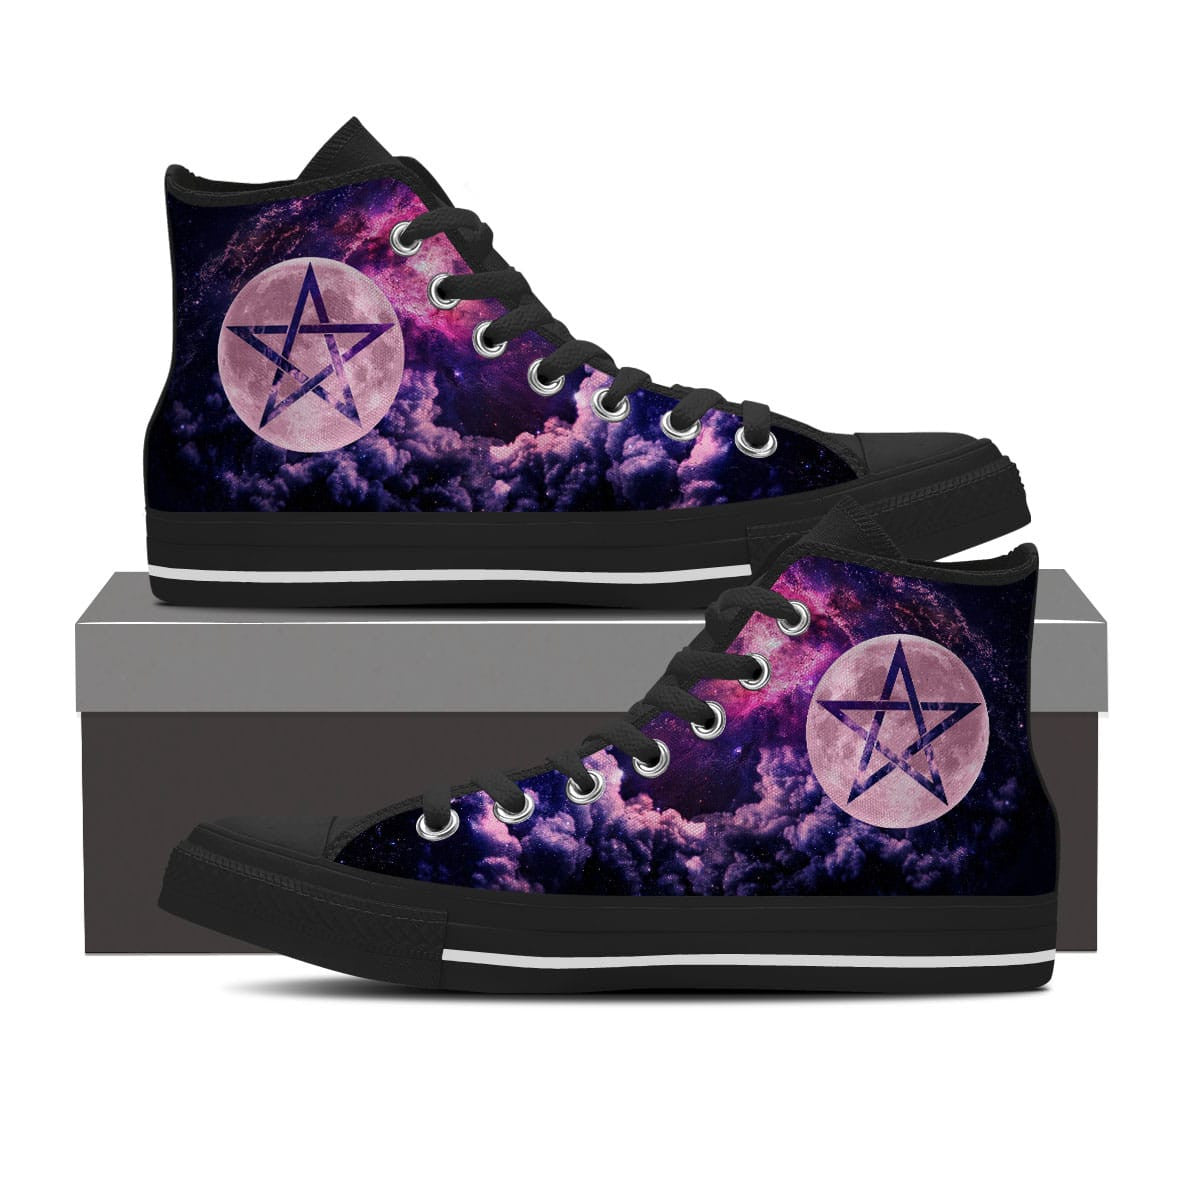 Wicca Shoes Groove Bags